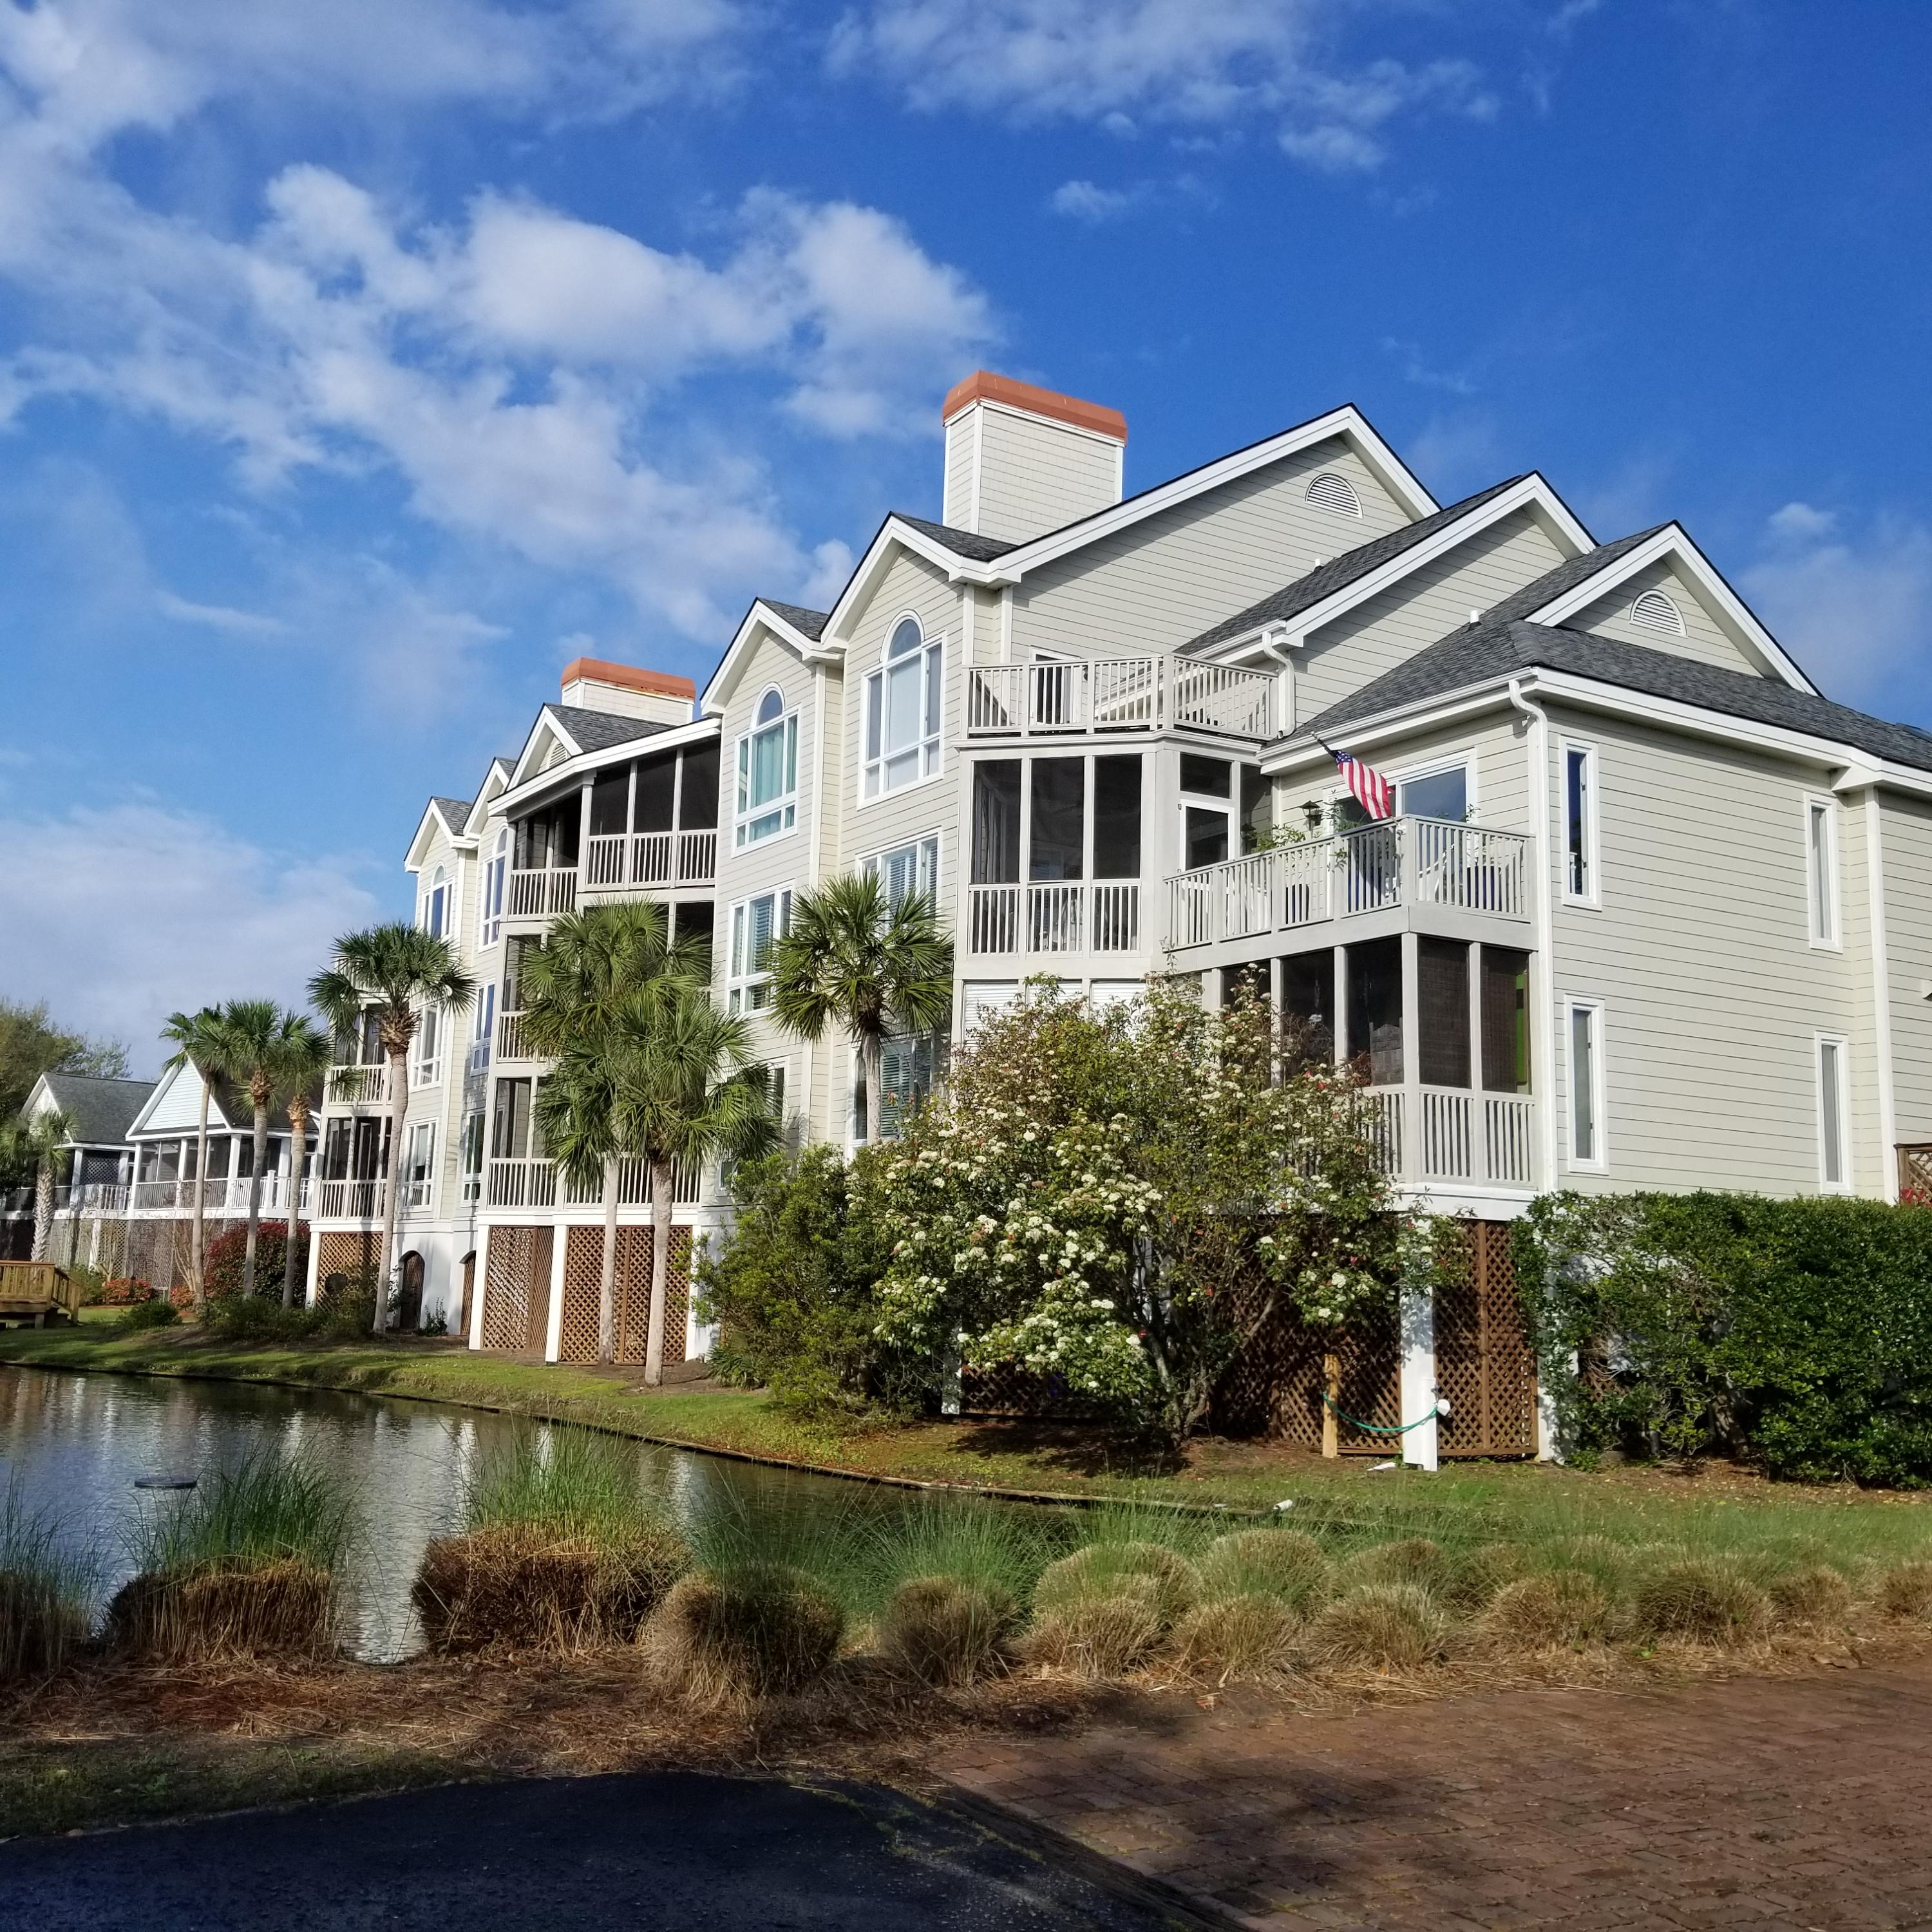 Simmons Pointe Homes For Sale - 1551 Ben Sawyer, Mount Pleasant, SC - 15